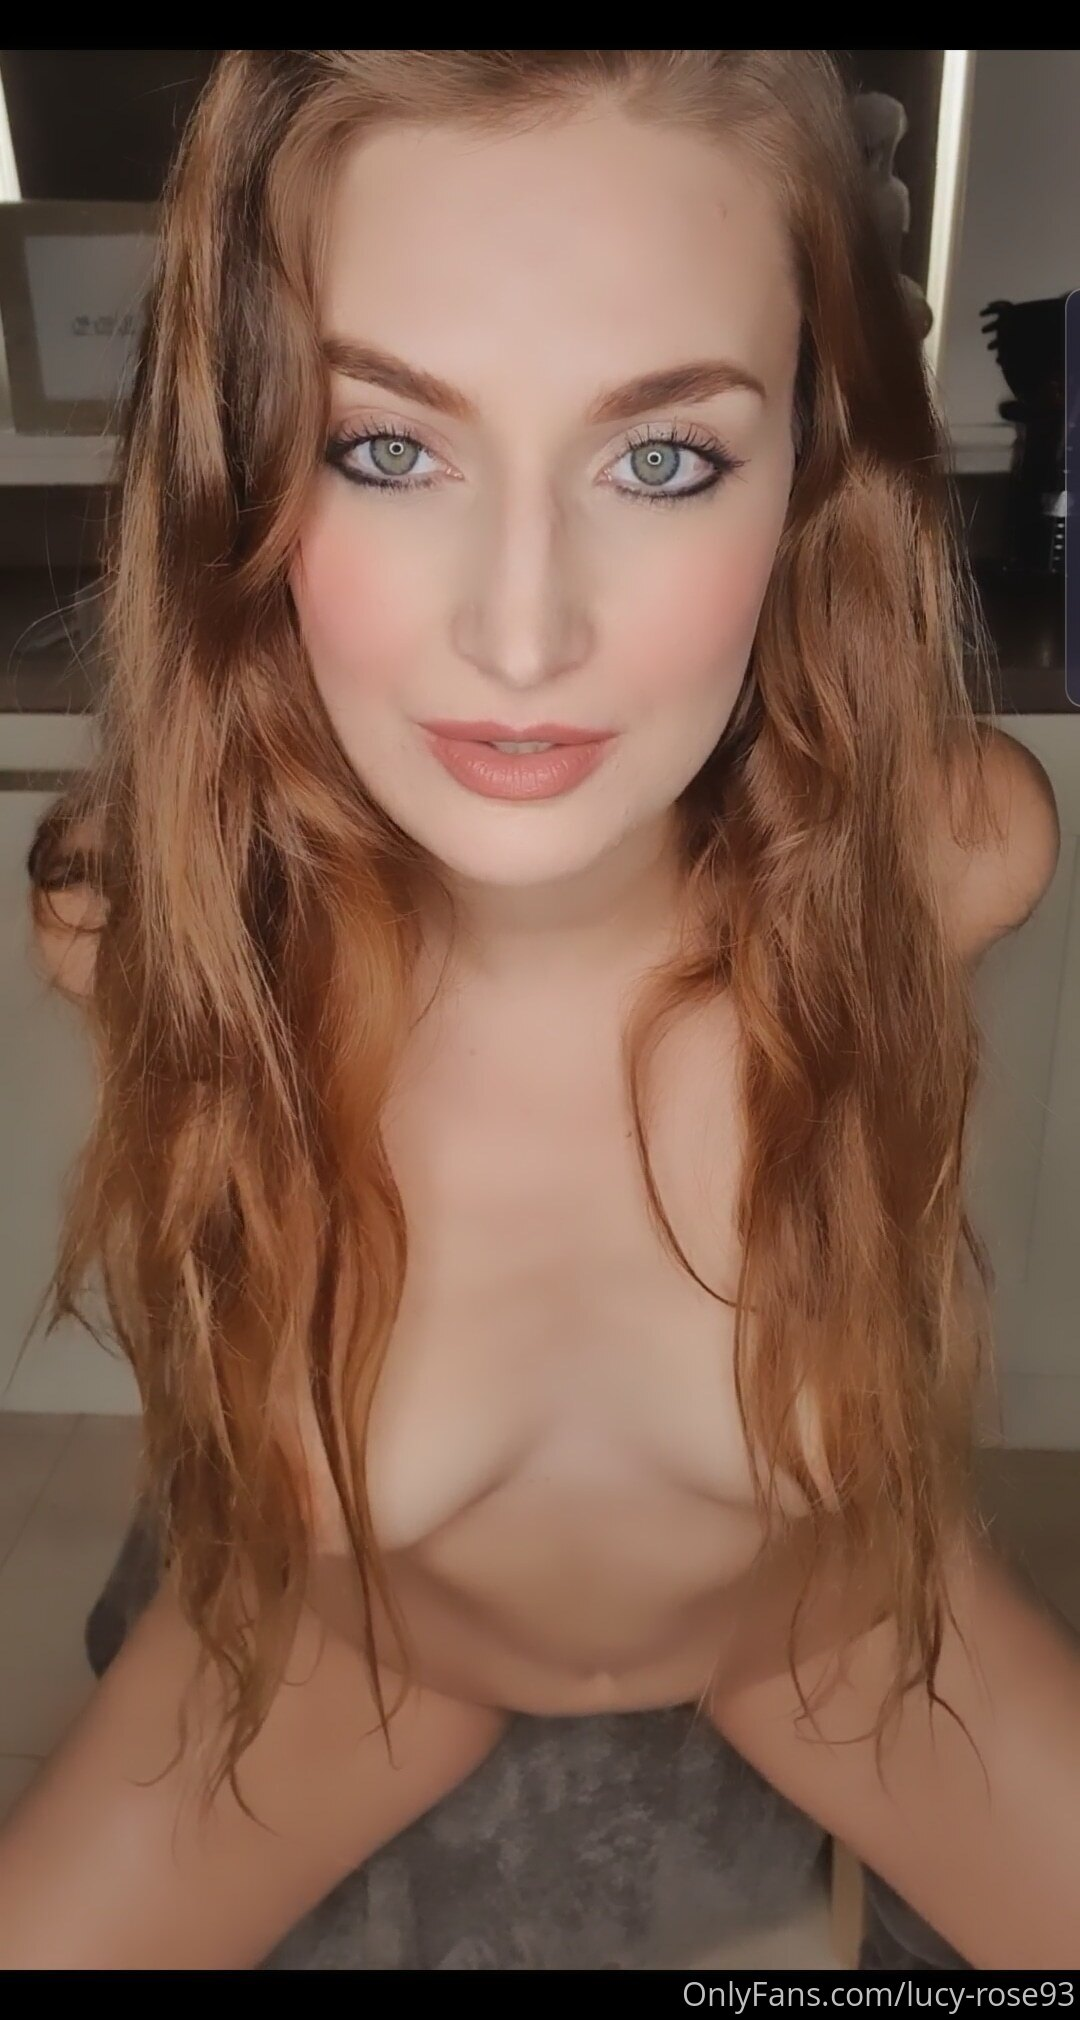 Lucy Rose, Lucy Rose93, Onlyfans 0289